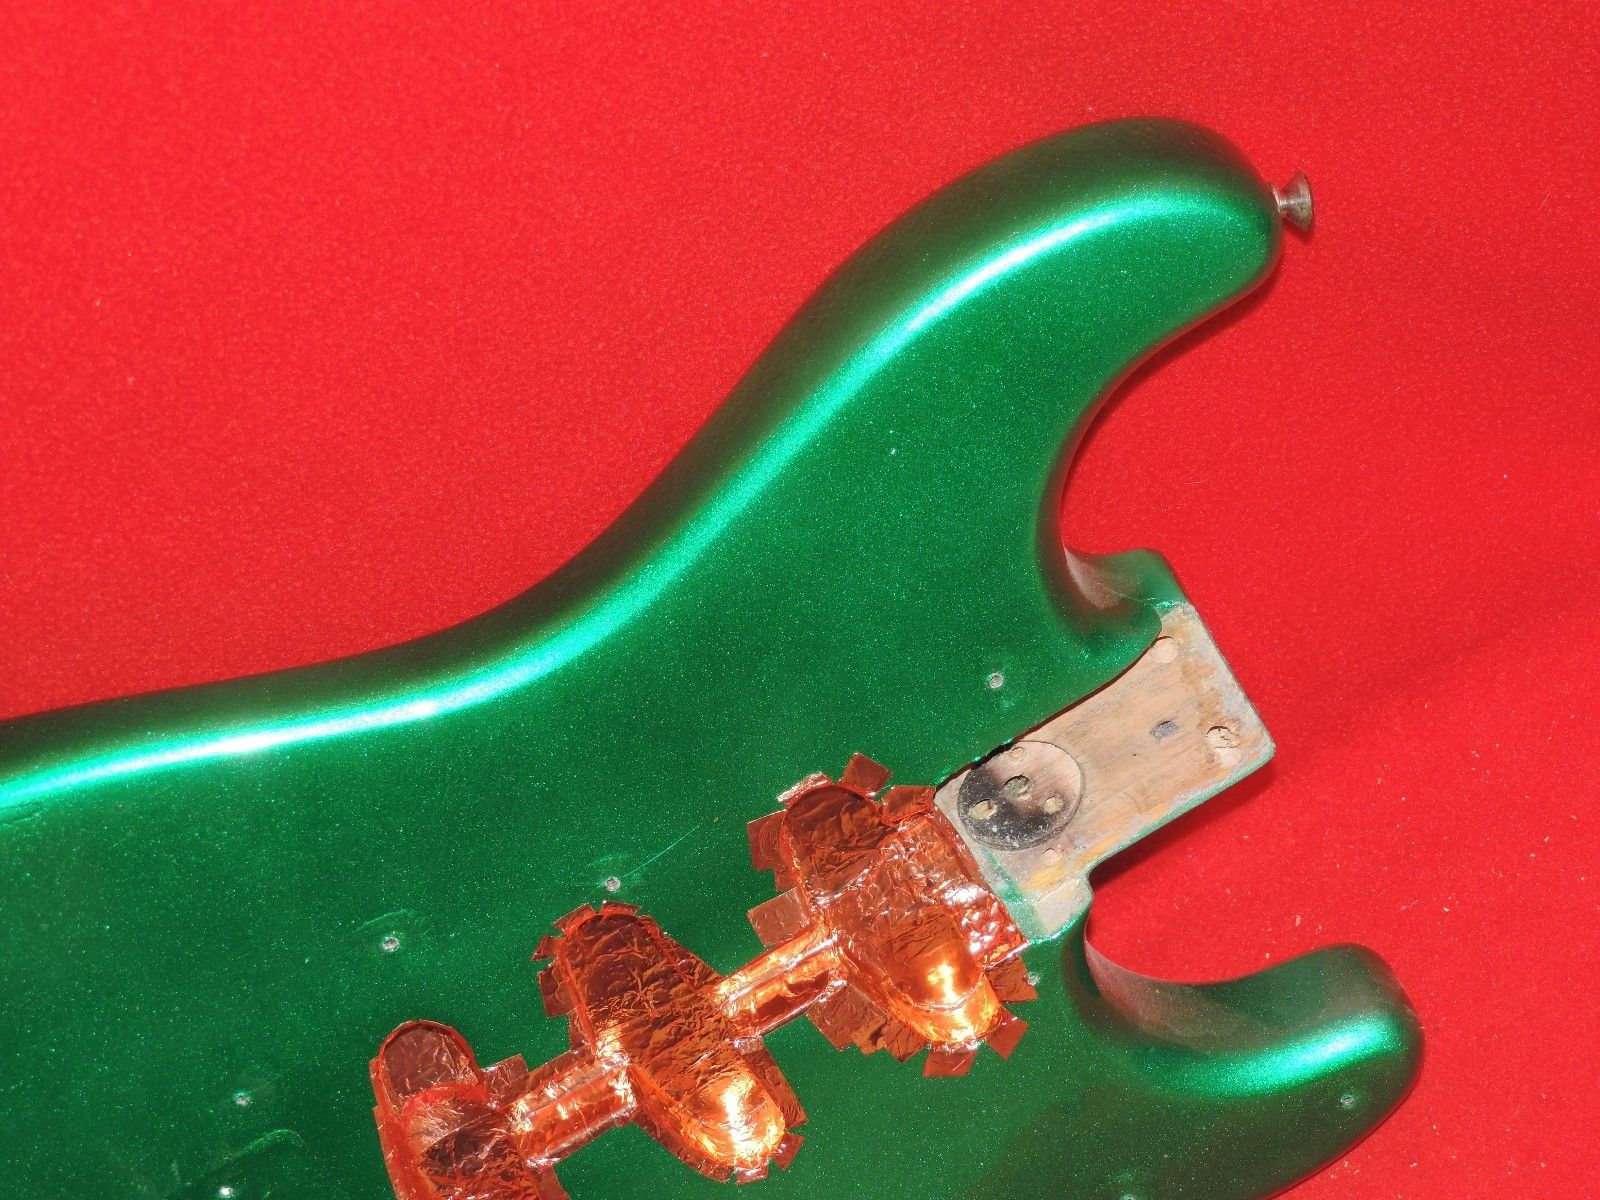 Fender 1978 Candy Green American Stratocaster Ash Body